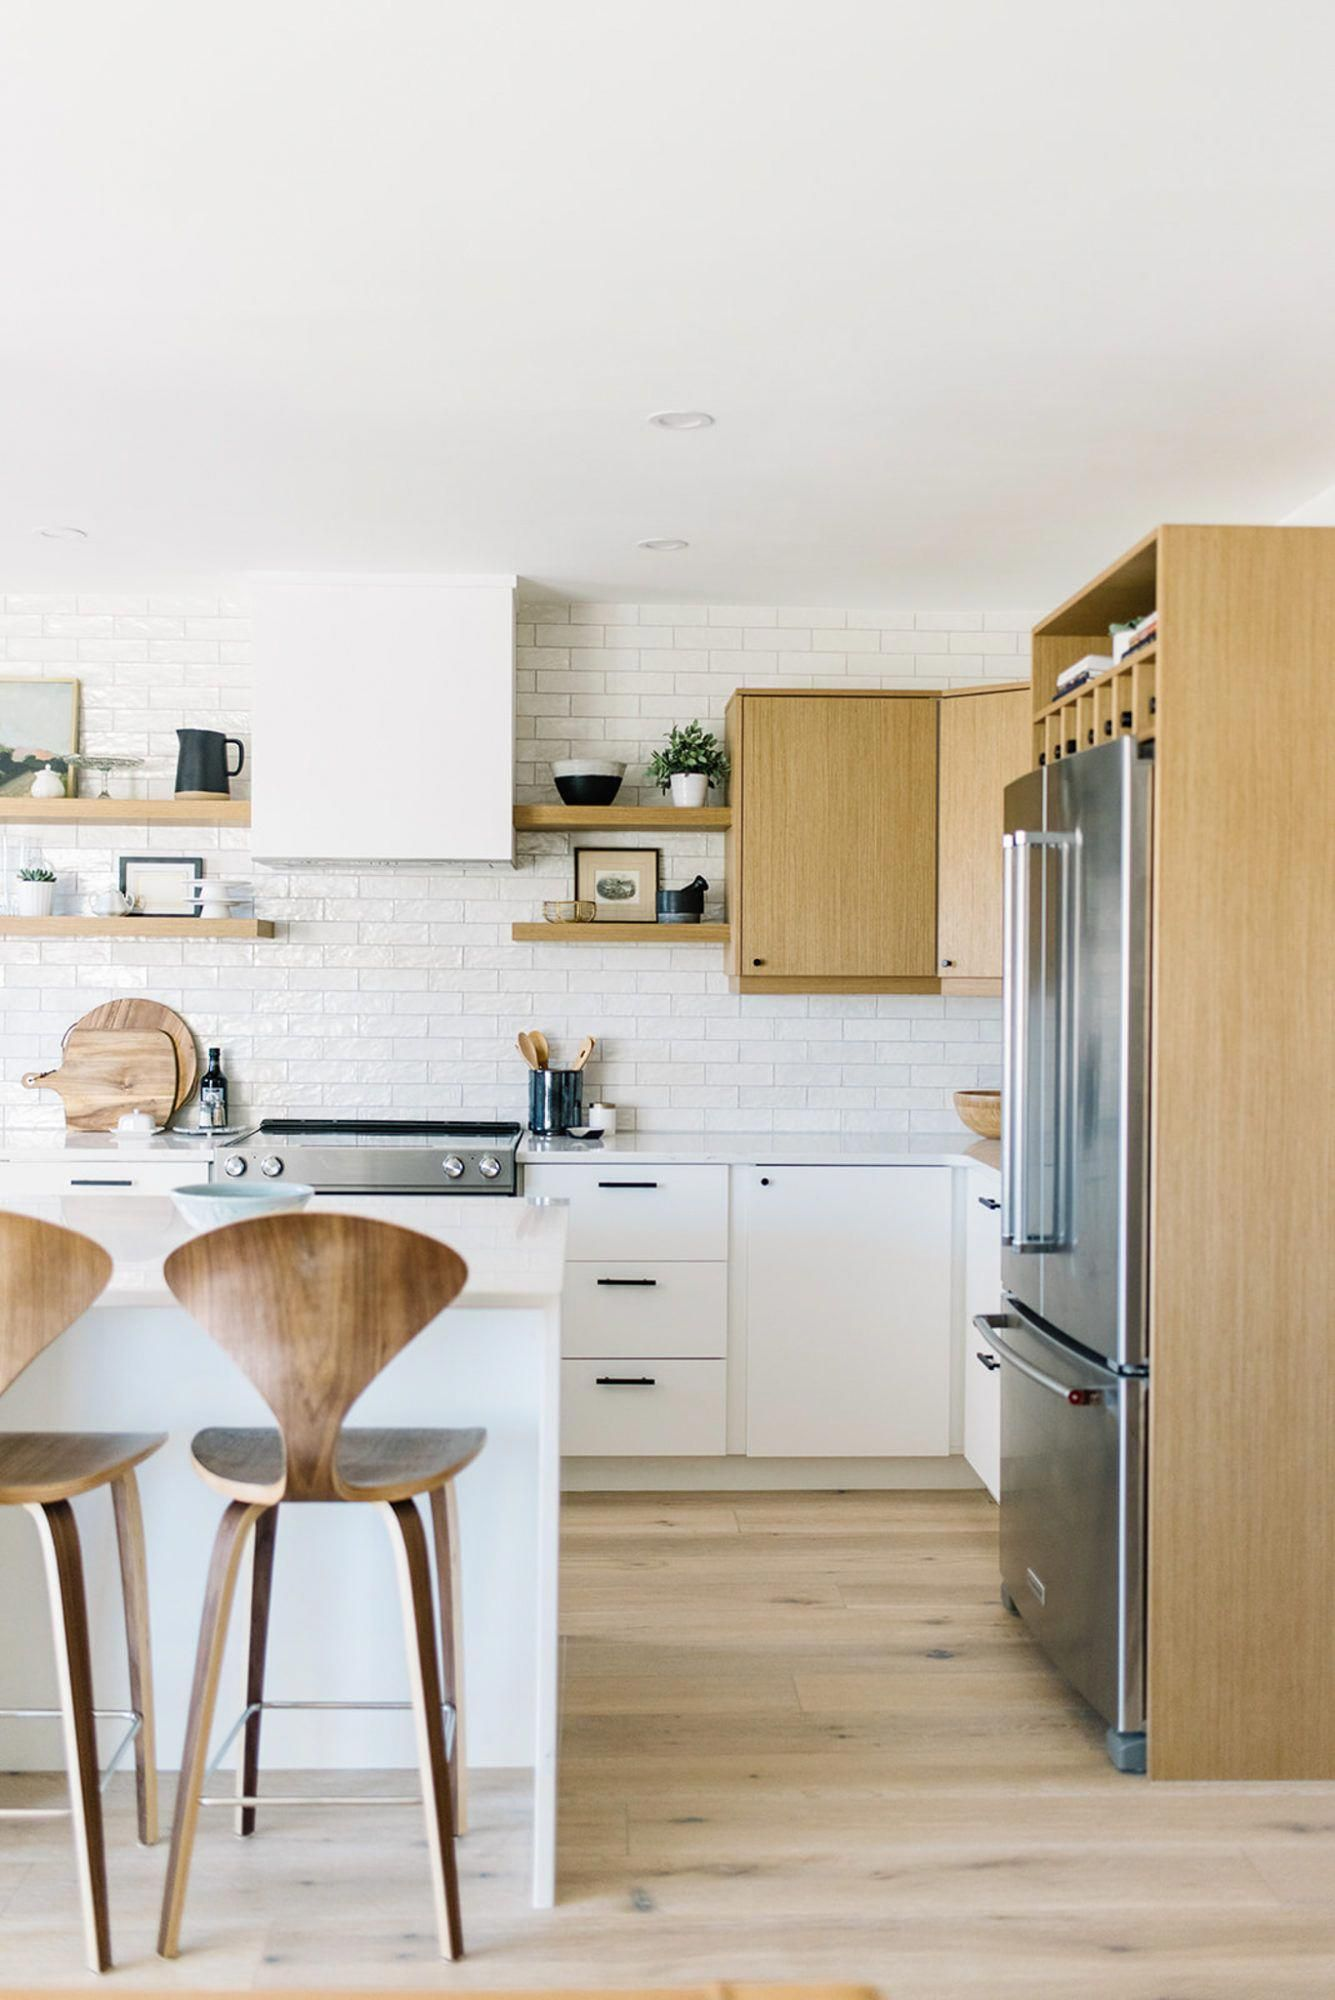 How Much Does A Kitchen Remodel Cost? | Kuchyně